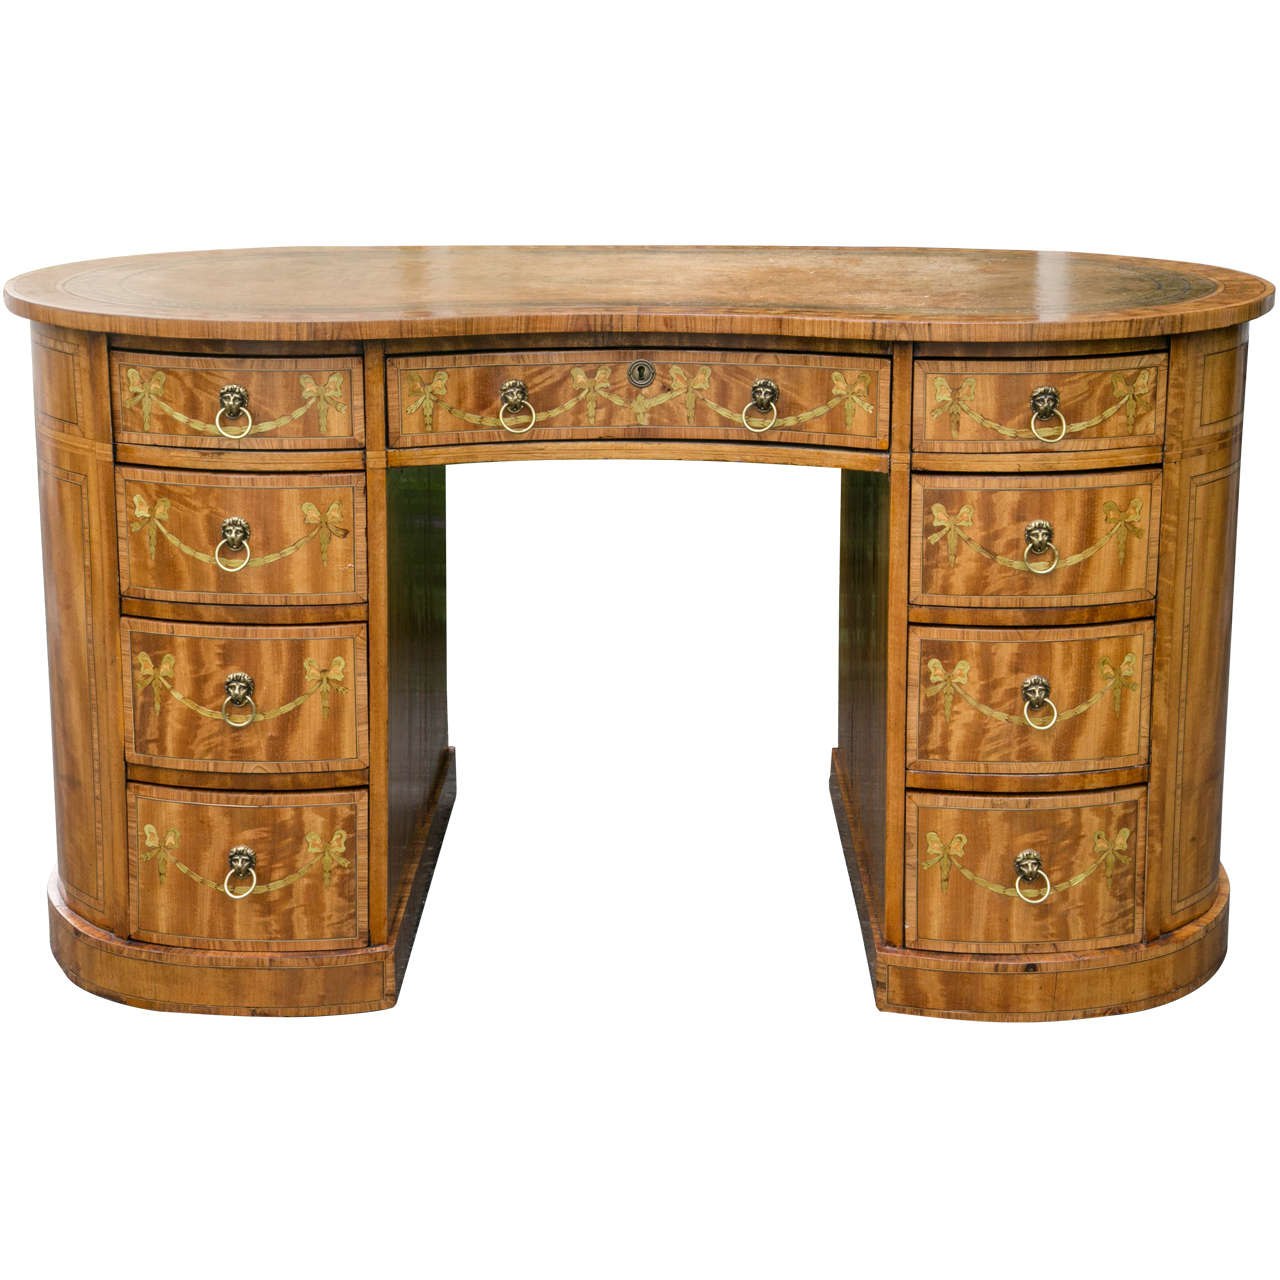 custom standing desk kidney shaped mid. edwardian kidney shaped desk 1 custom standing mid a